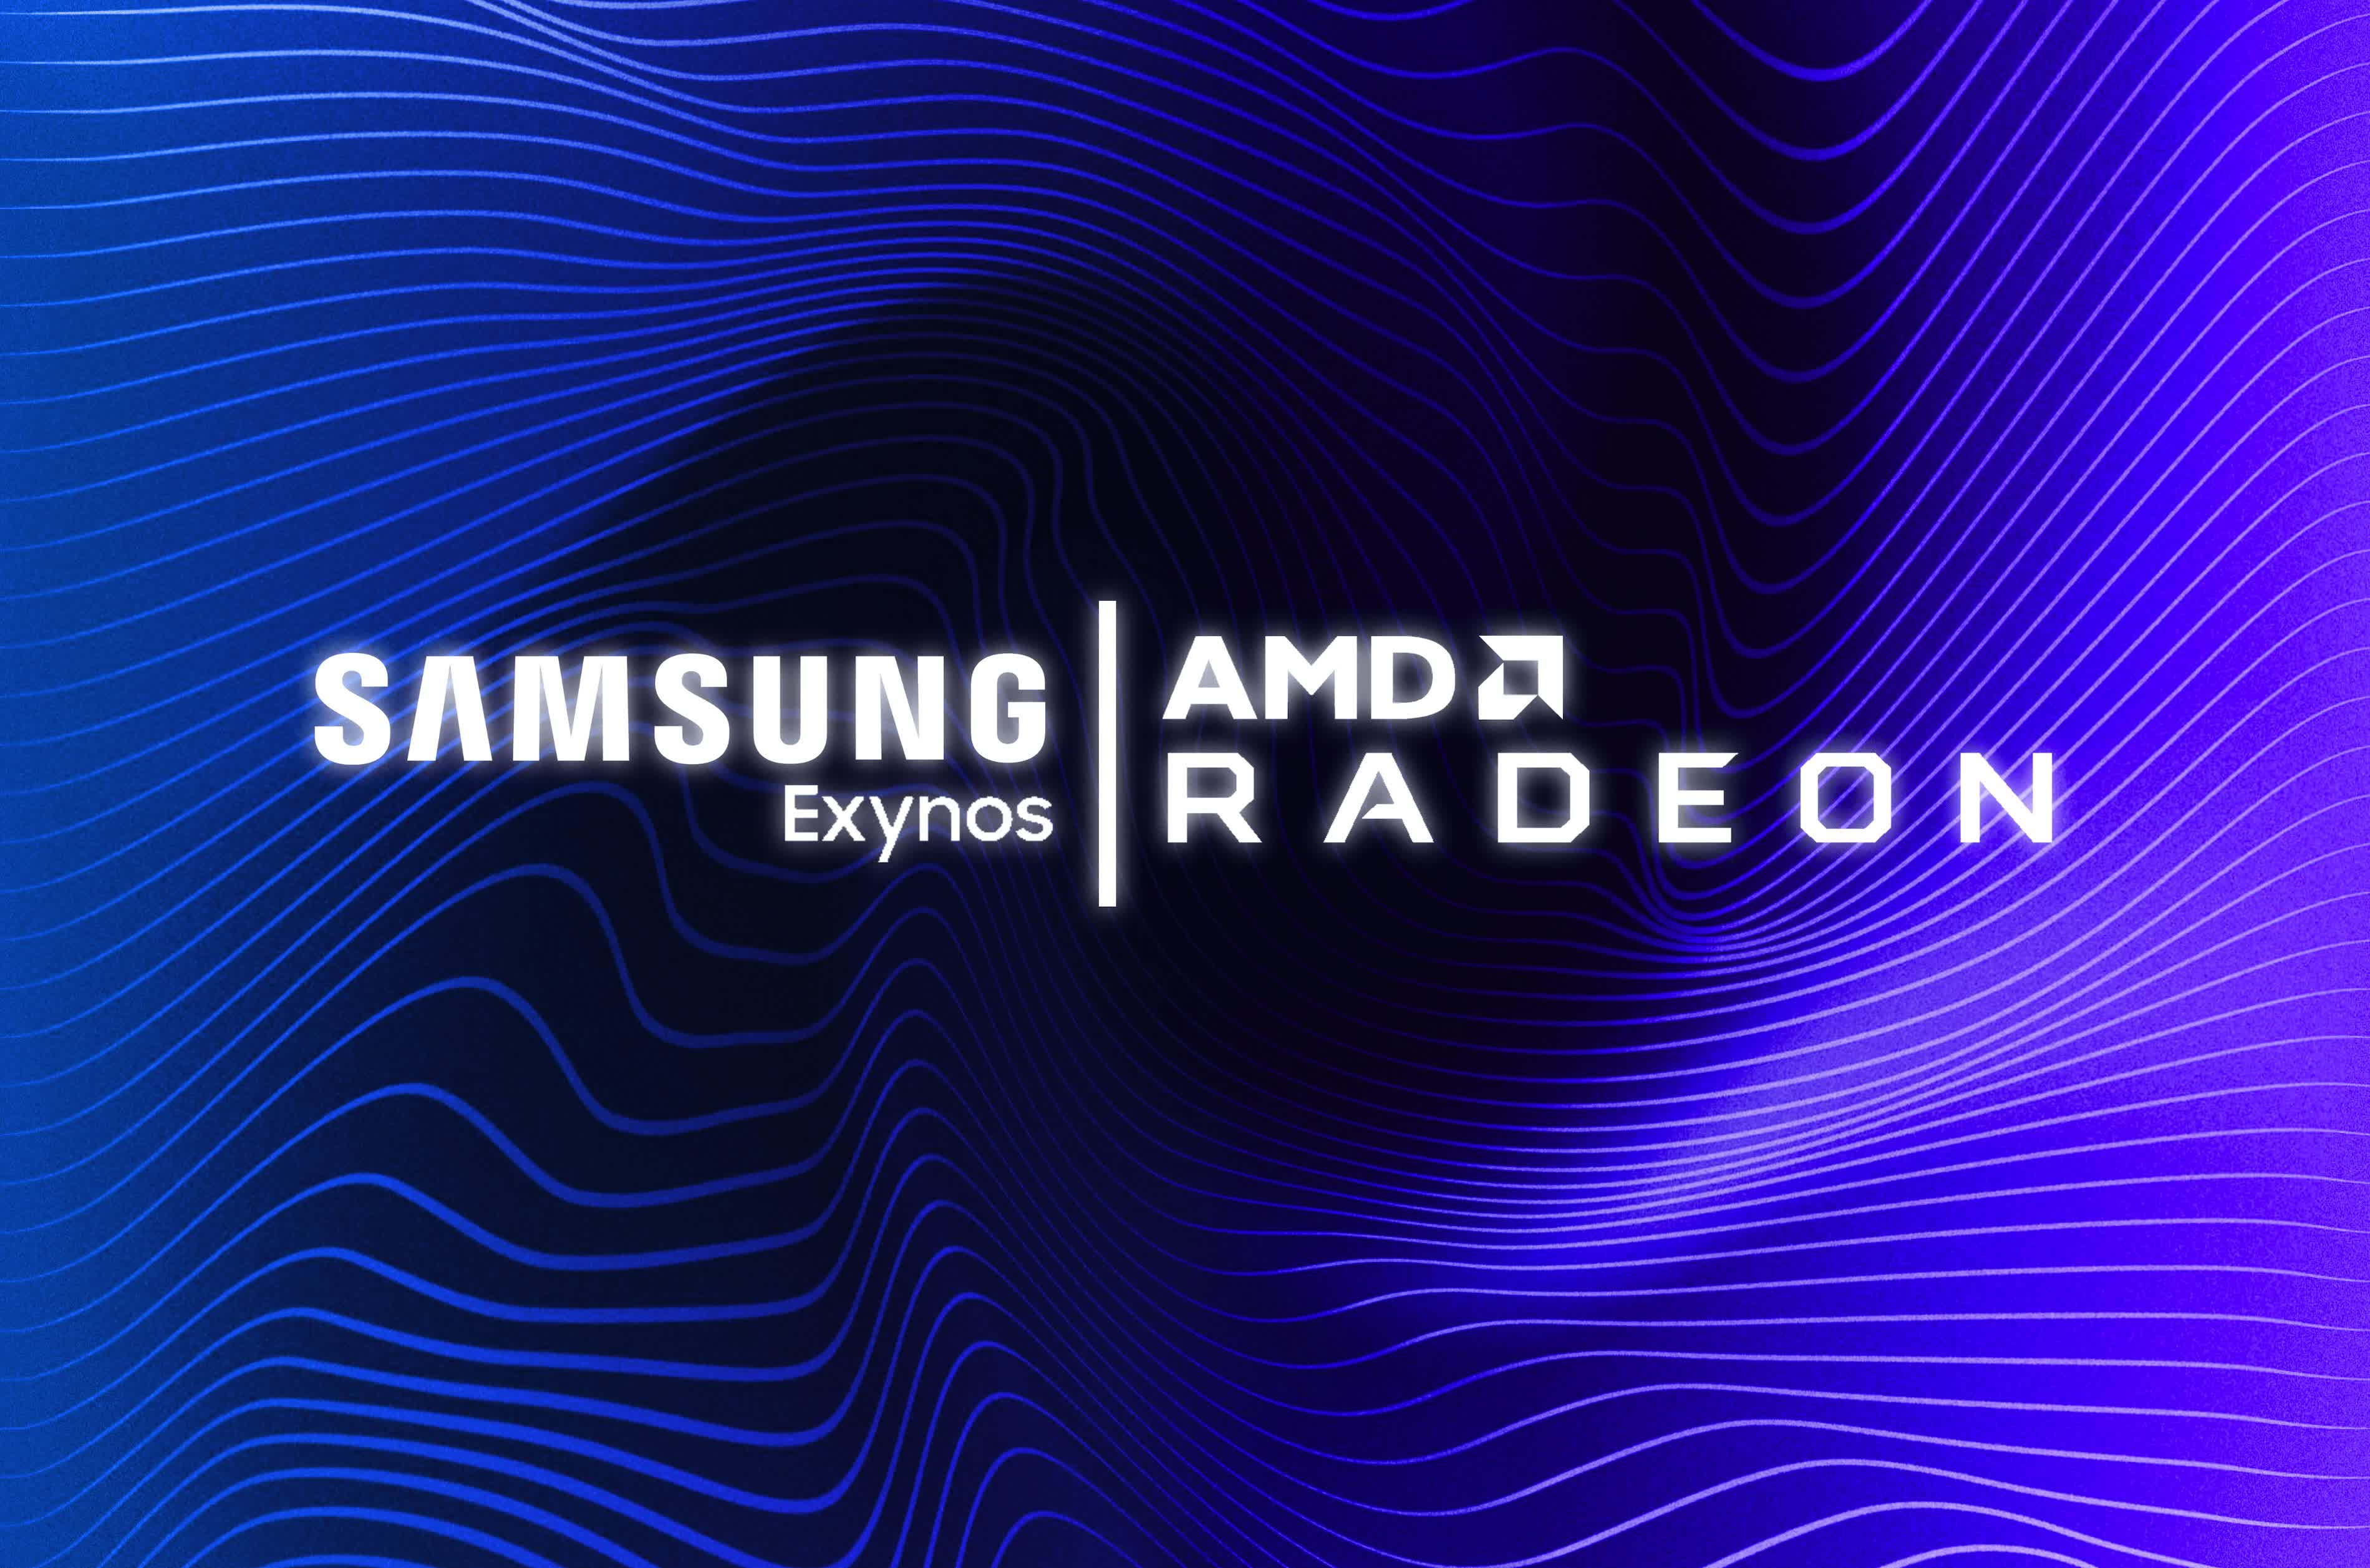 Exynos chips with AMD RDNA 2 graphics could power future Galaxy A-series phones, too